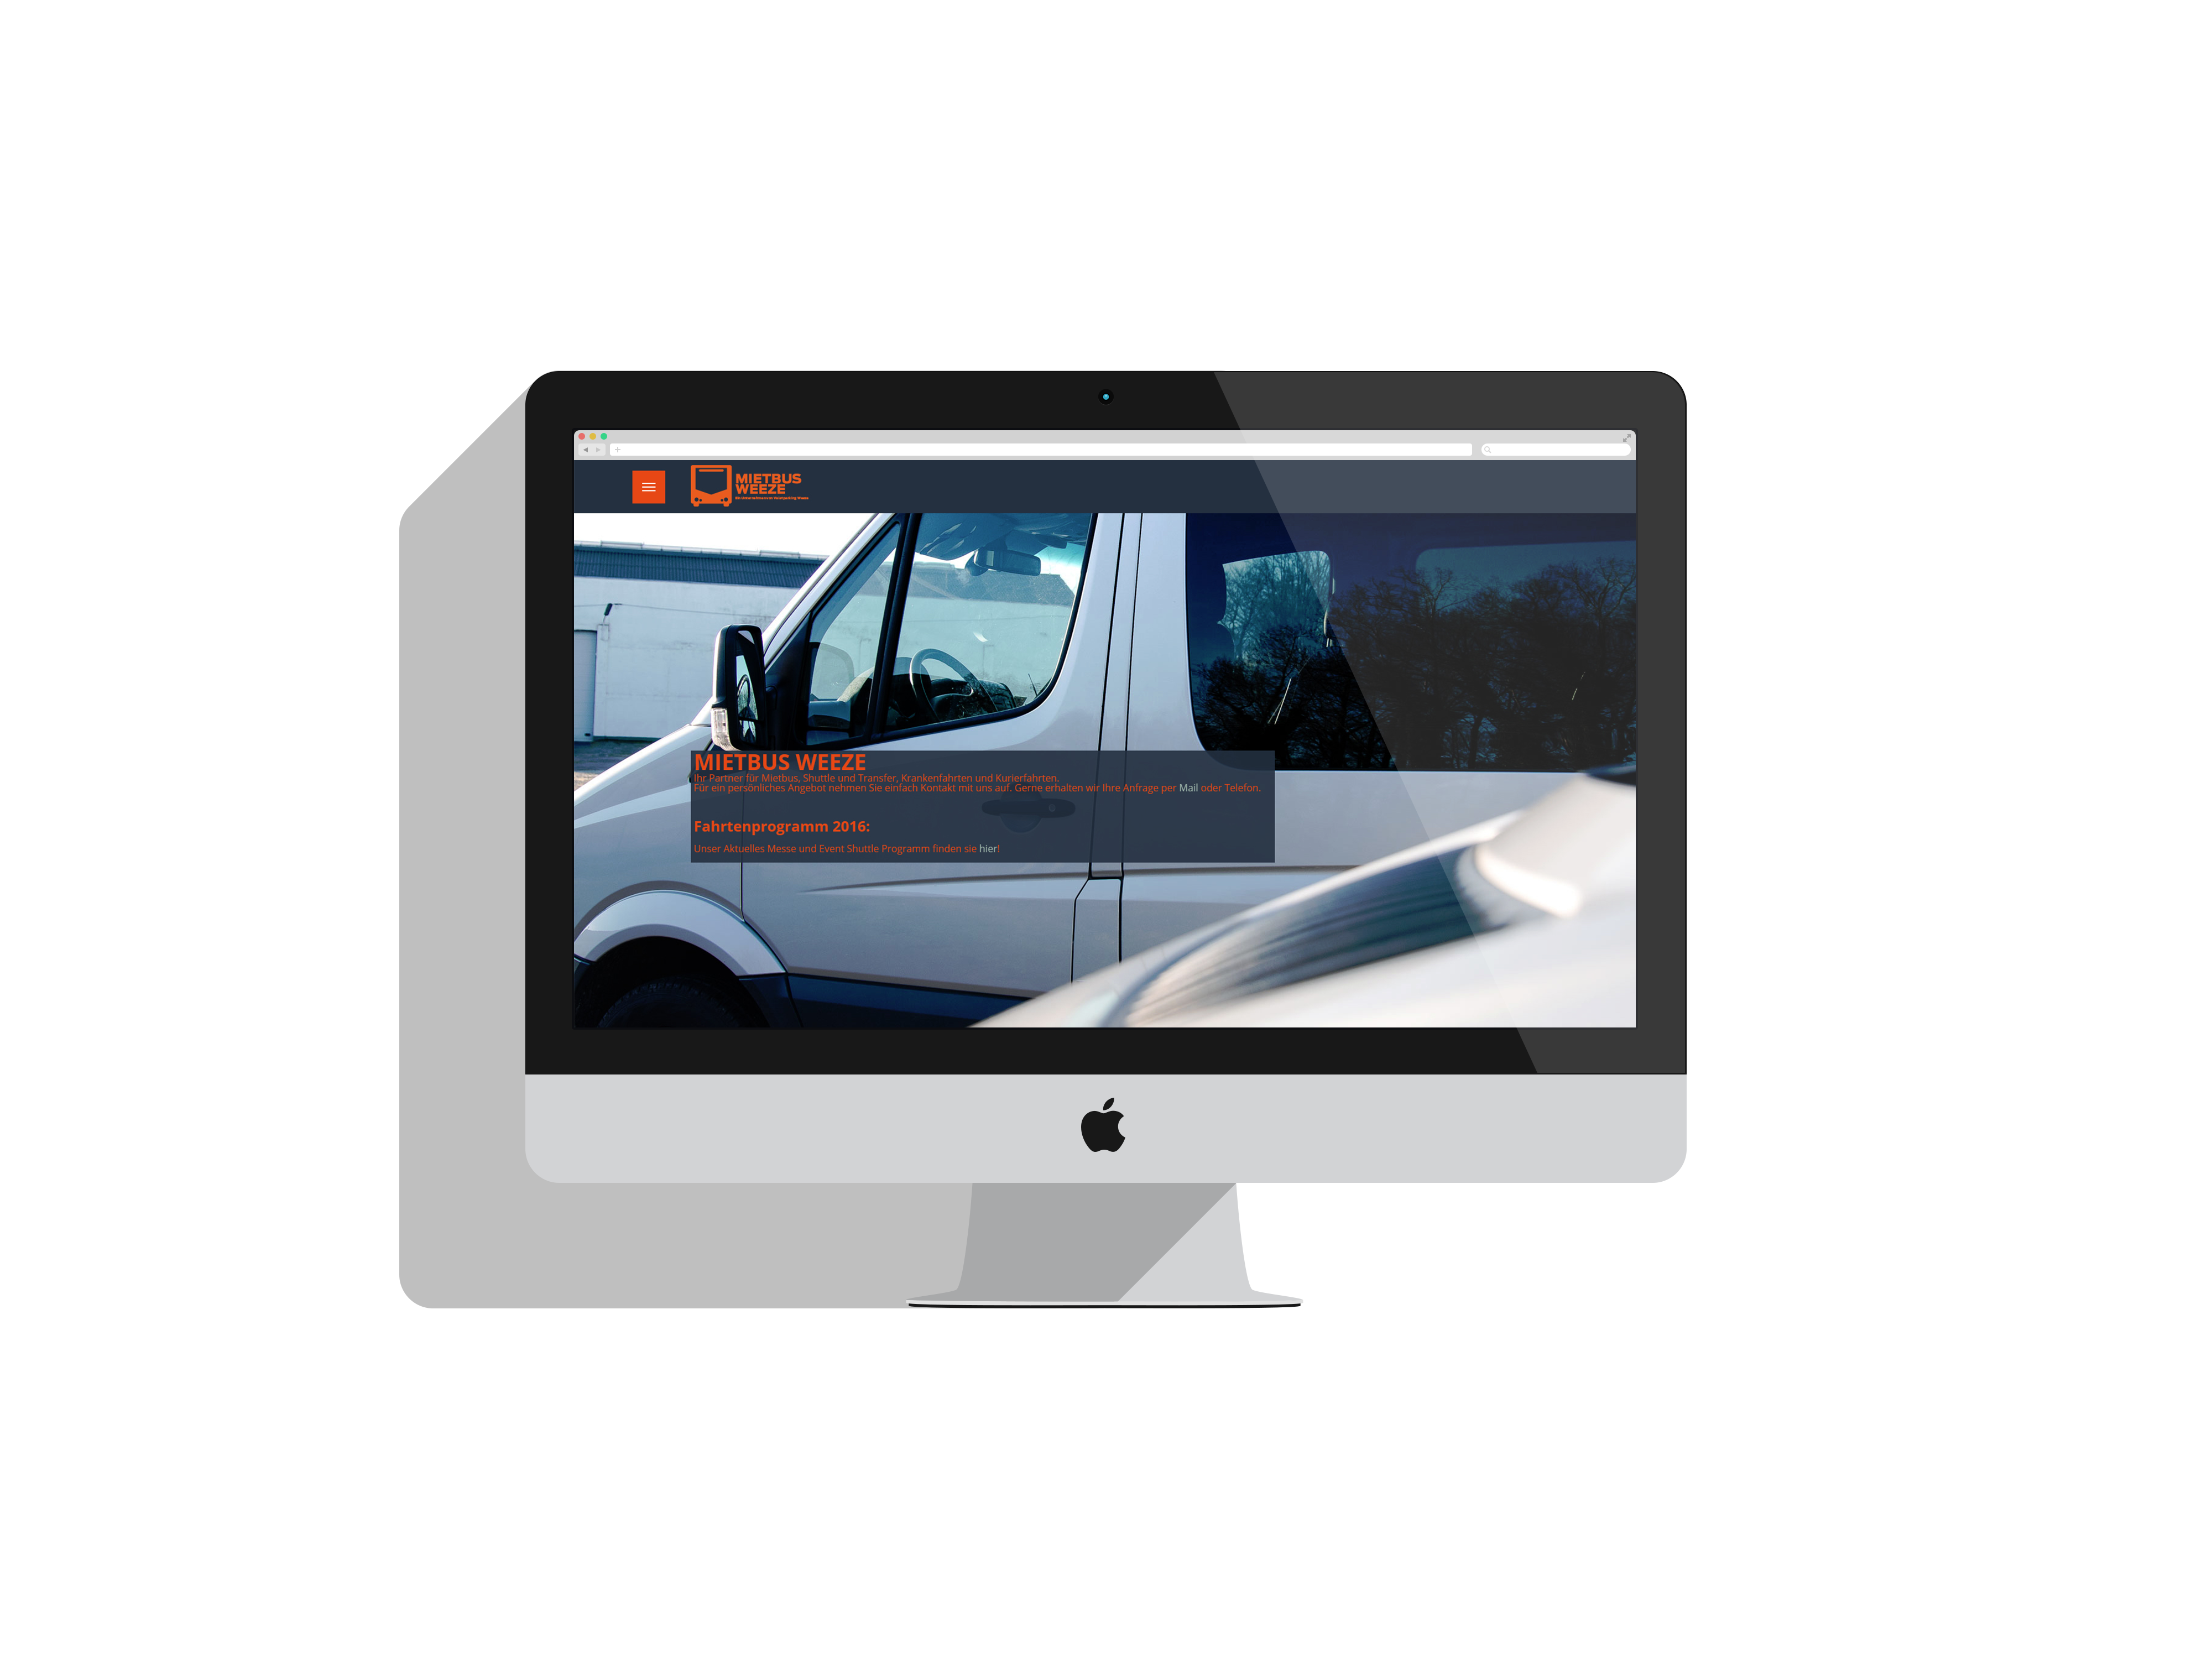 Mietbus Weeze Web 01